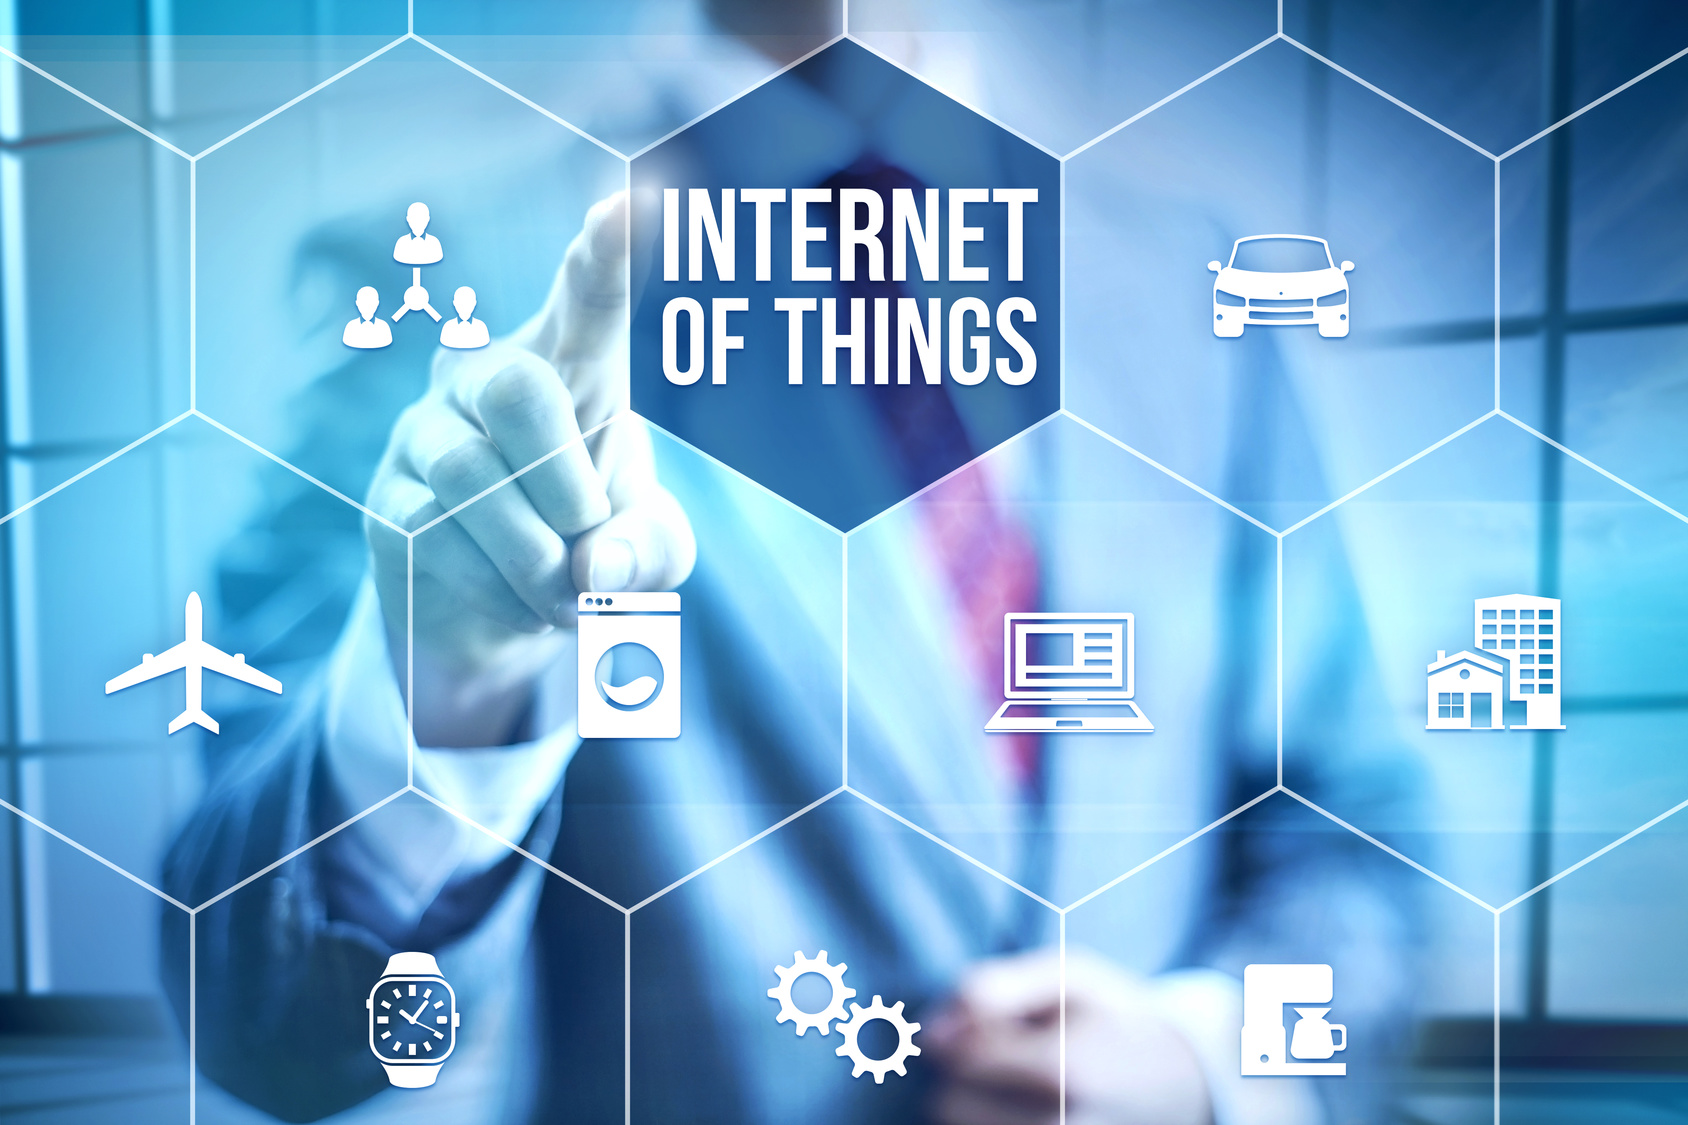 Delivering Profits with the Internet of Things